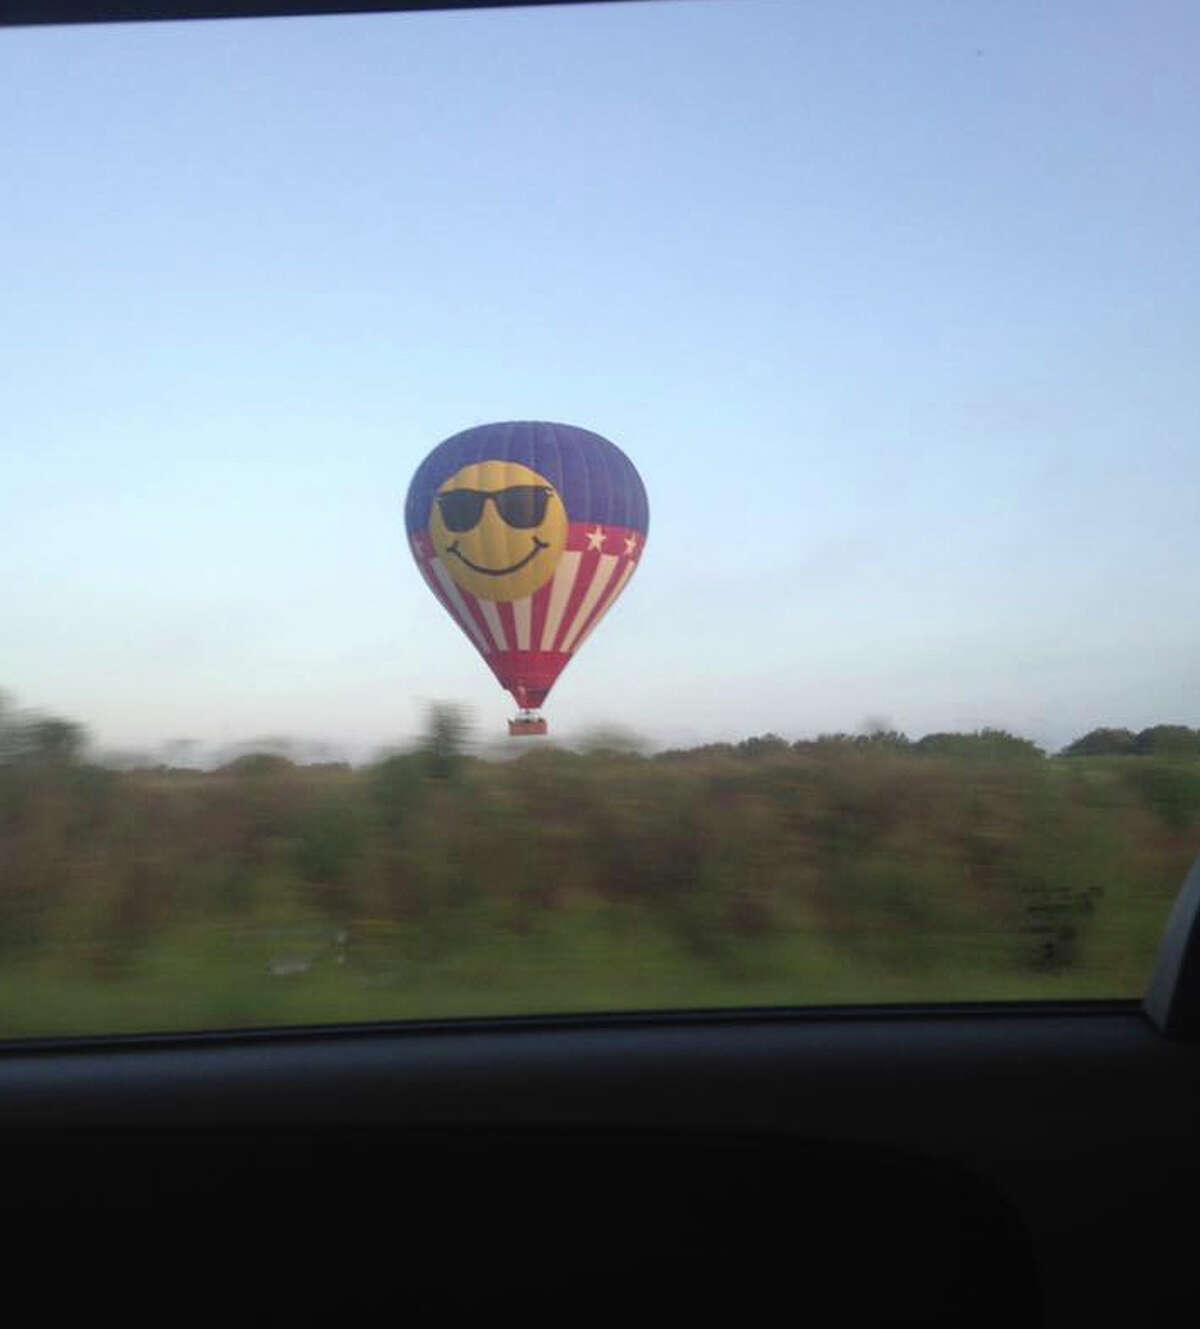 Investigators examine the scene of Saturday morning's crash of a large smiley face hot-air balloon, shown taking off below, near Lockhart. The NTSB says it is the deadliest such crash in U.S. history.